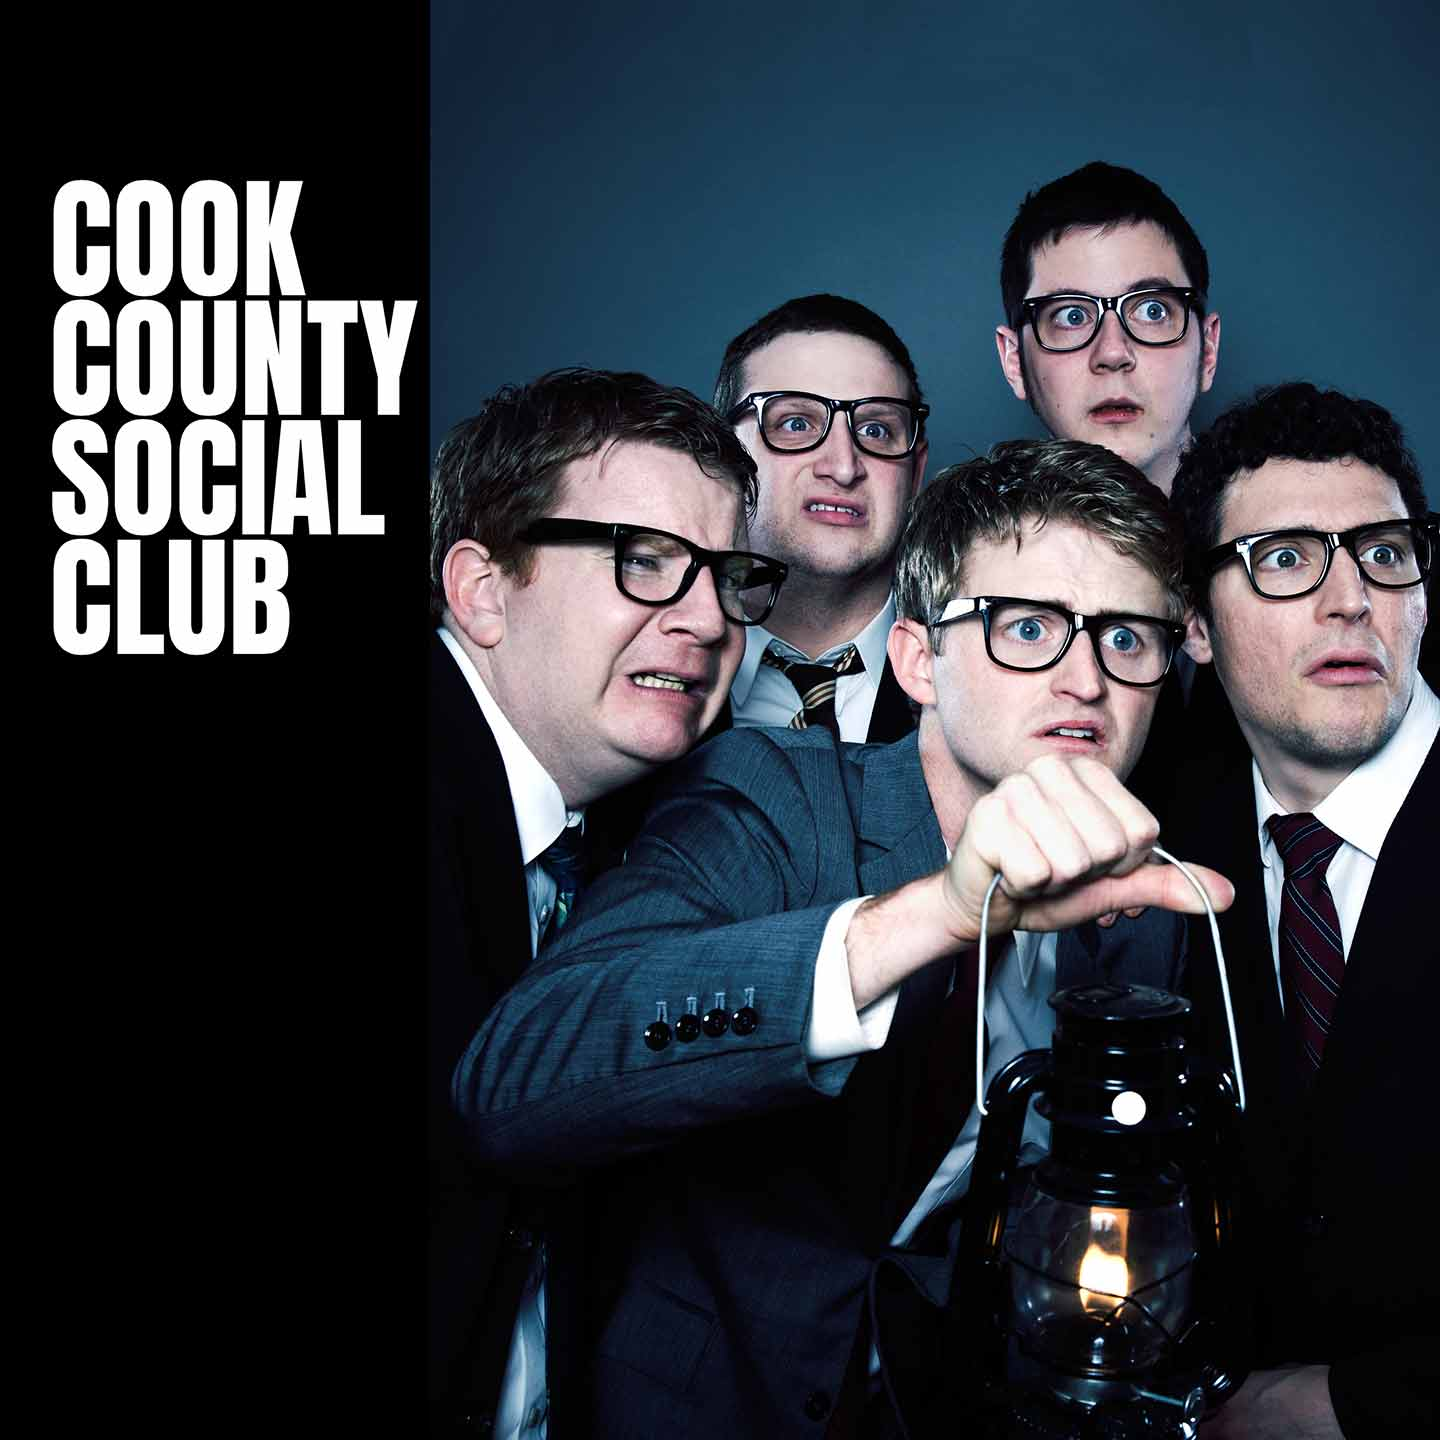 Cook County Social Club